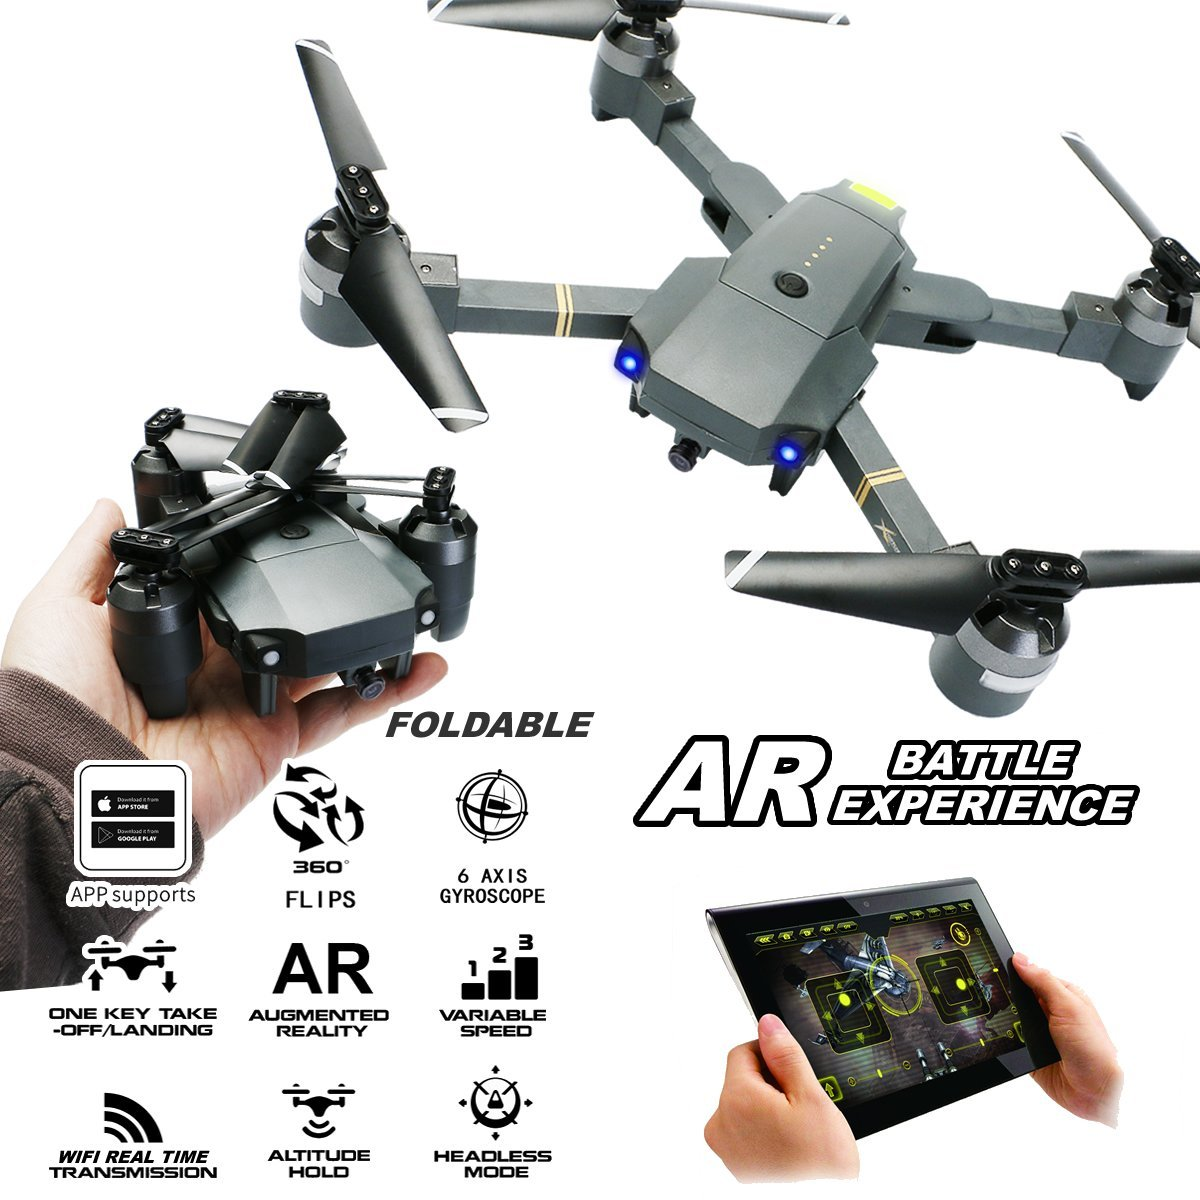 ATTOP XT-1 RC Drone Foldable Quadcopter 2.4Ghz 4CH WIFI FPV 1080P HD Camera w/ One Key Take Off & Land Altitude Hold RTF Gift Квадрокоптер